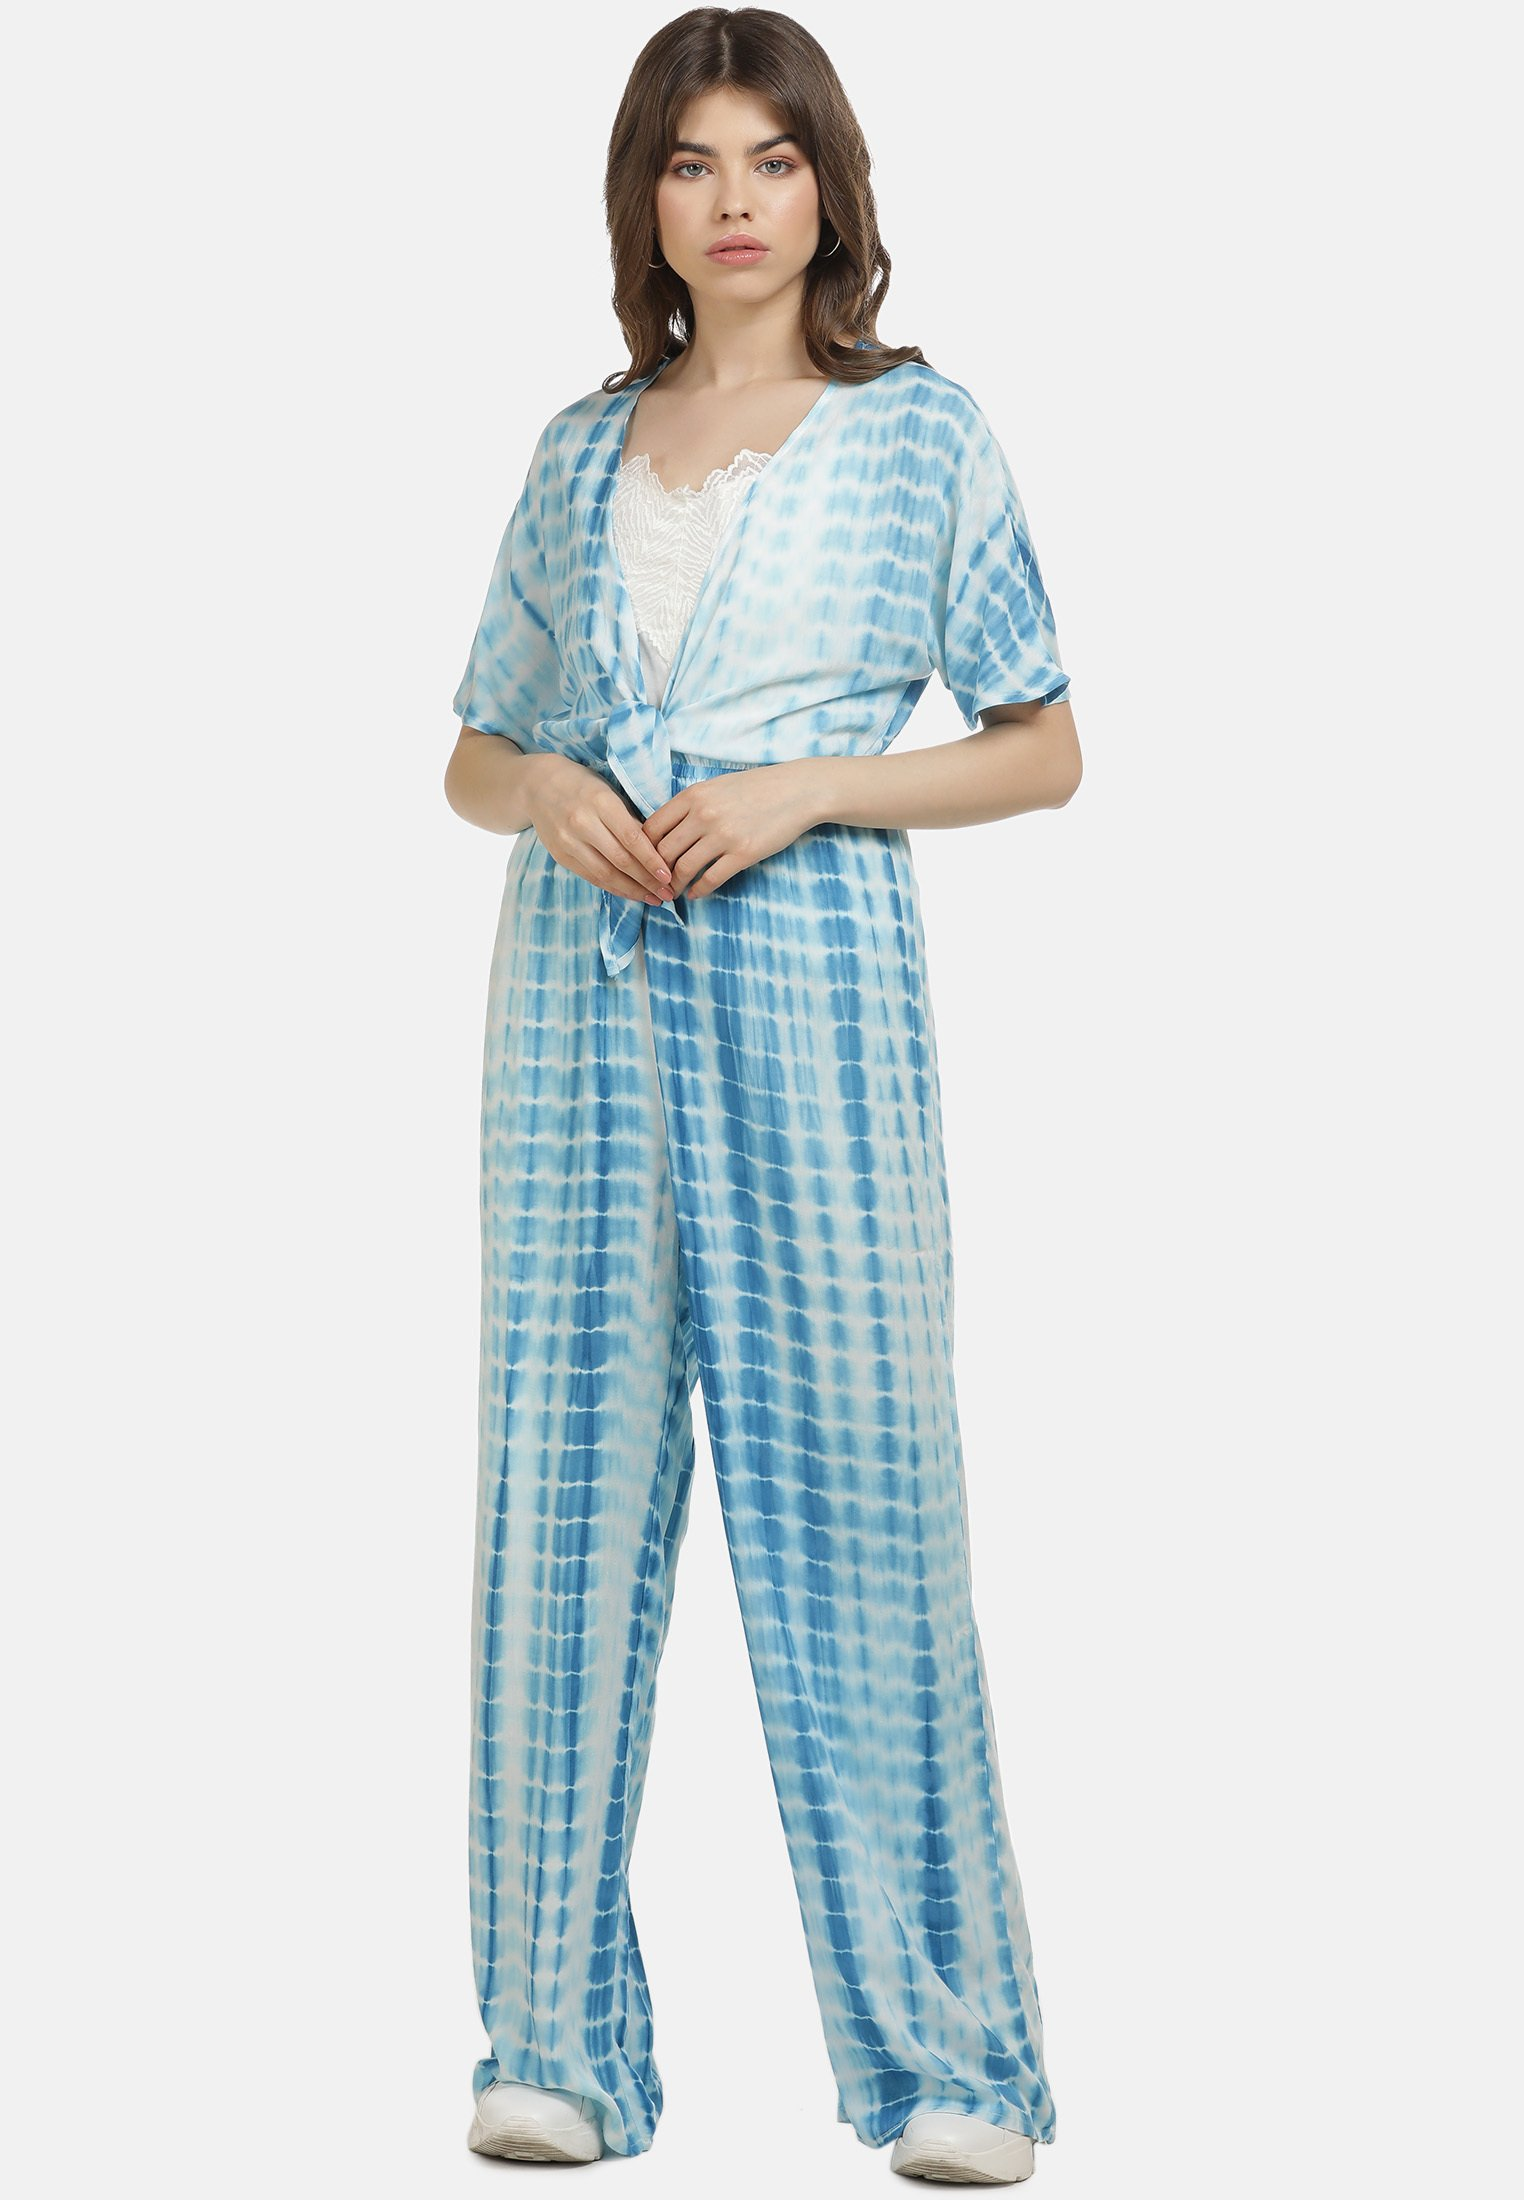 The Cheapest Women's Clothing myMo Jumpsuit hellblau 5HupMgNv3